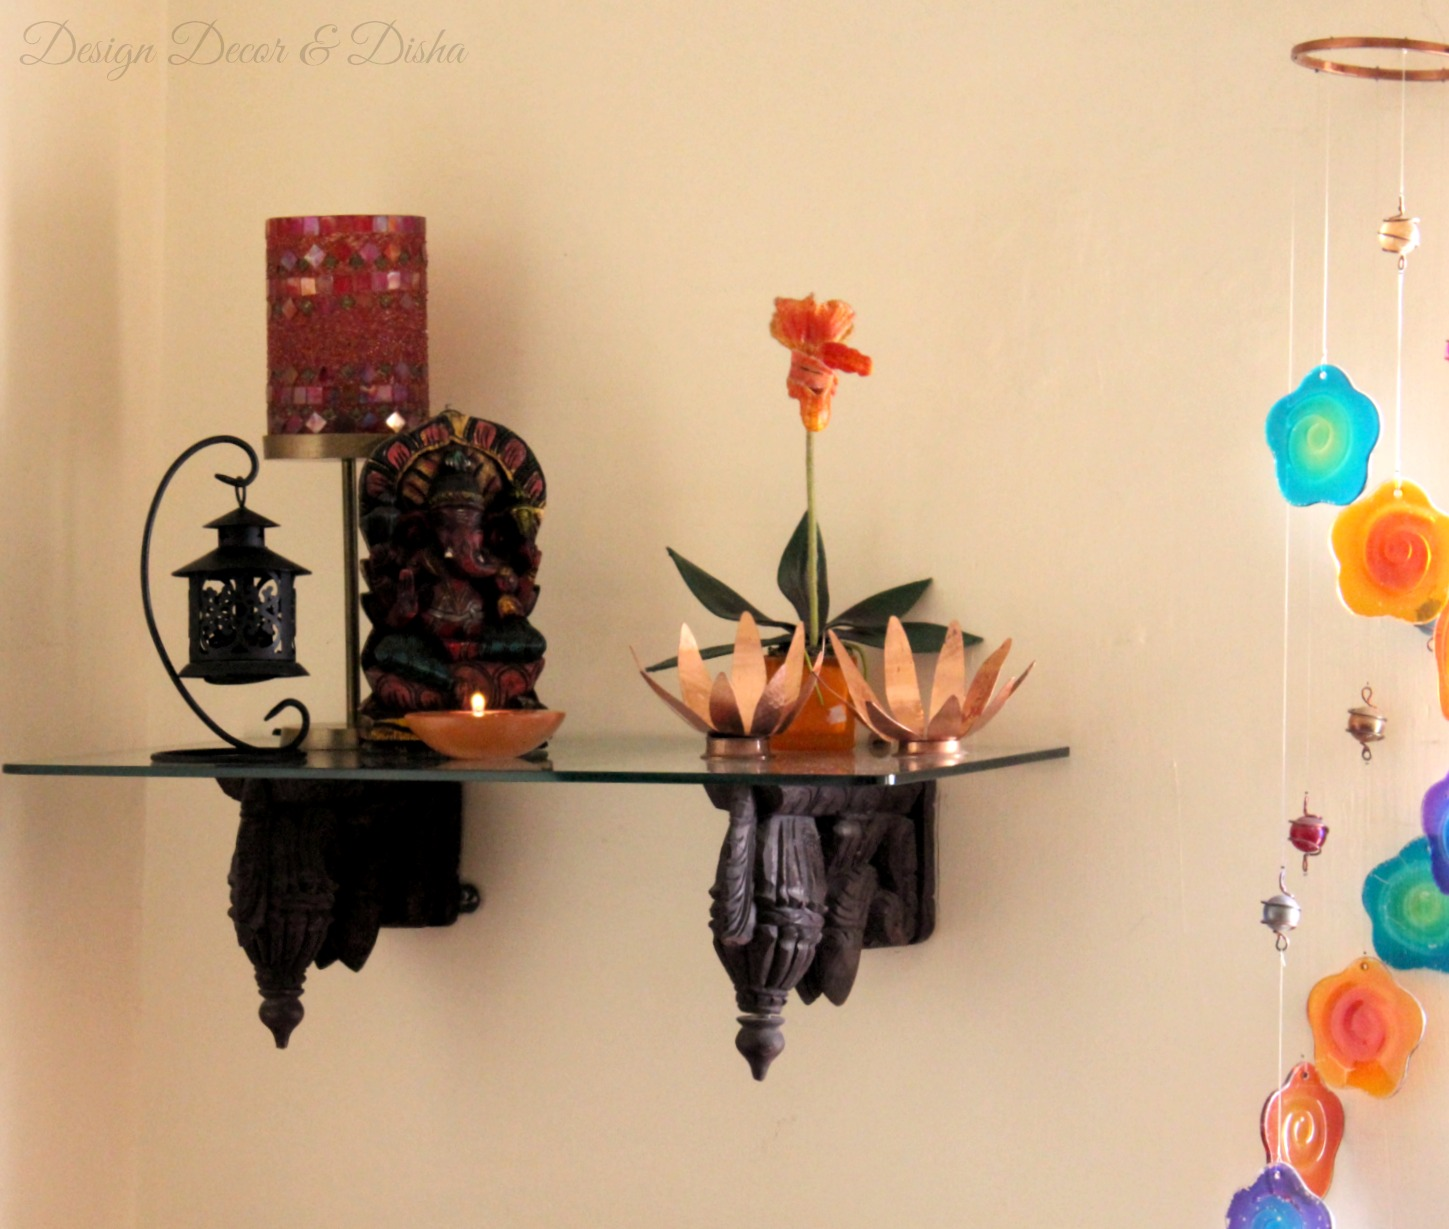 Design Decor & Disha | An Indian Design & Decor Blog: July 2016